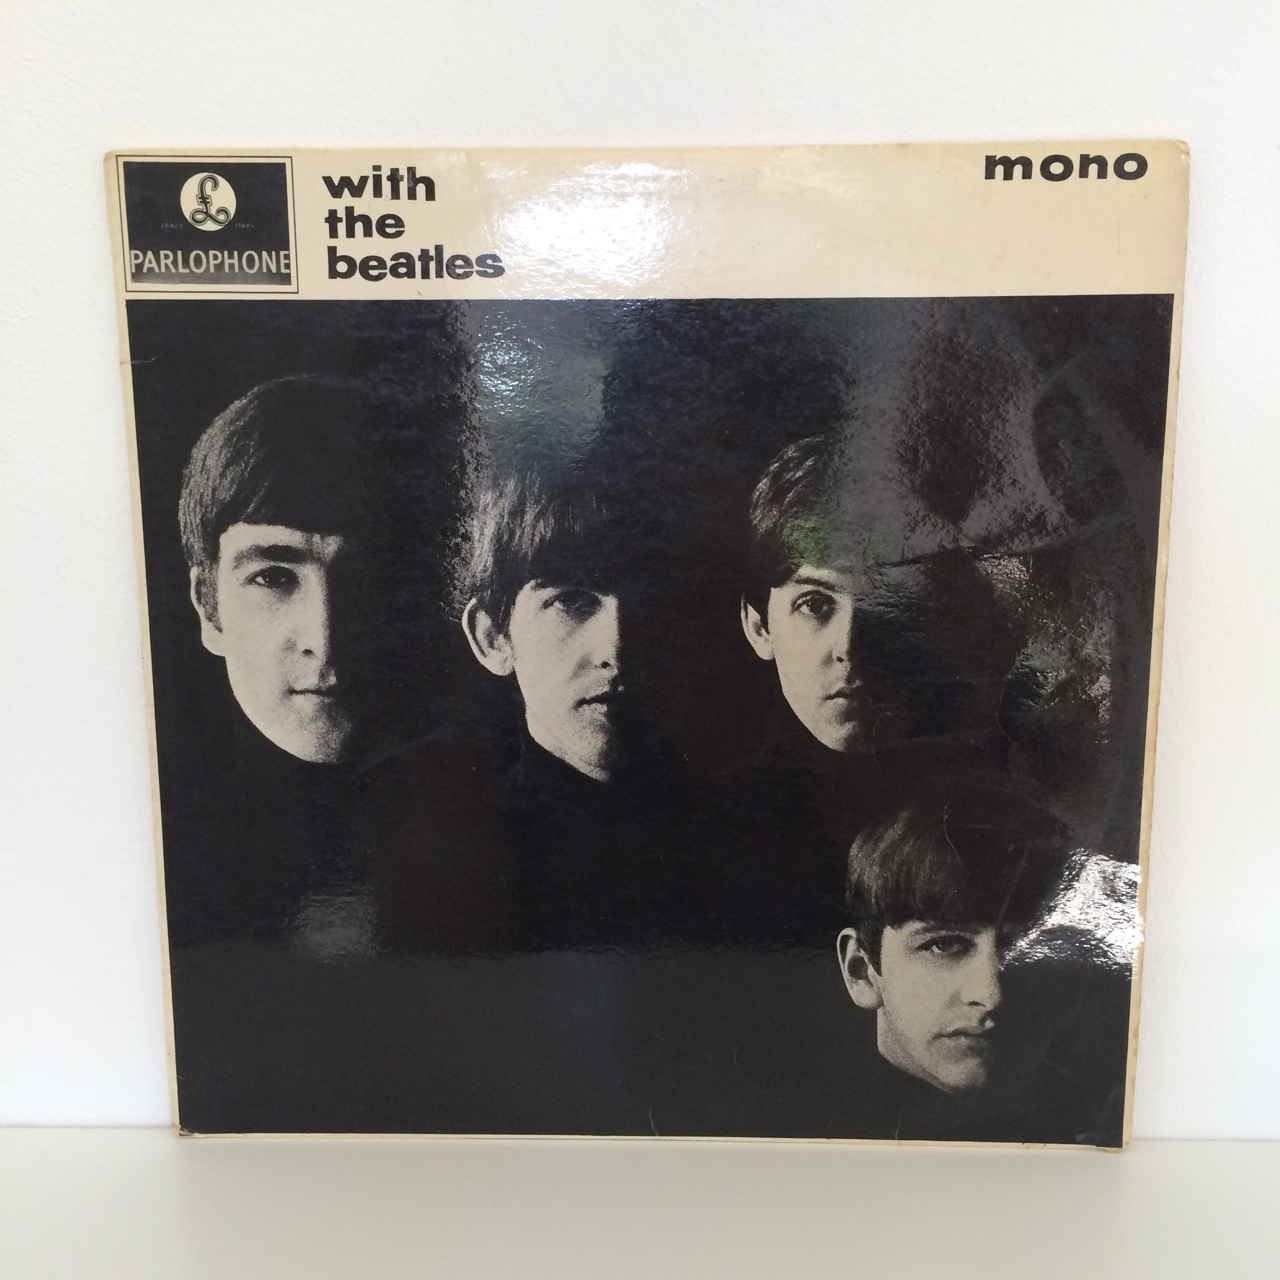 The Beatles - With The Beatles Mono Vinyl LP, First    - Depop